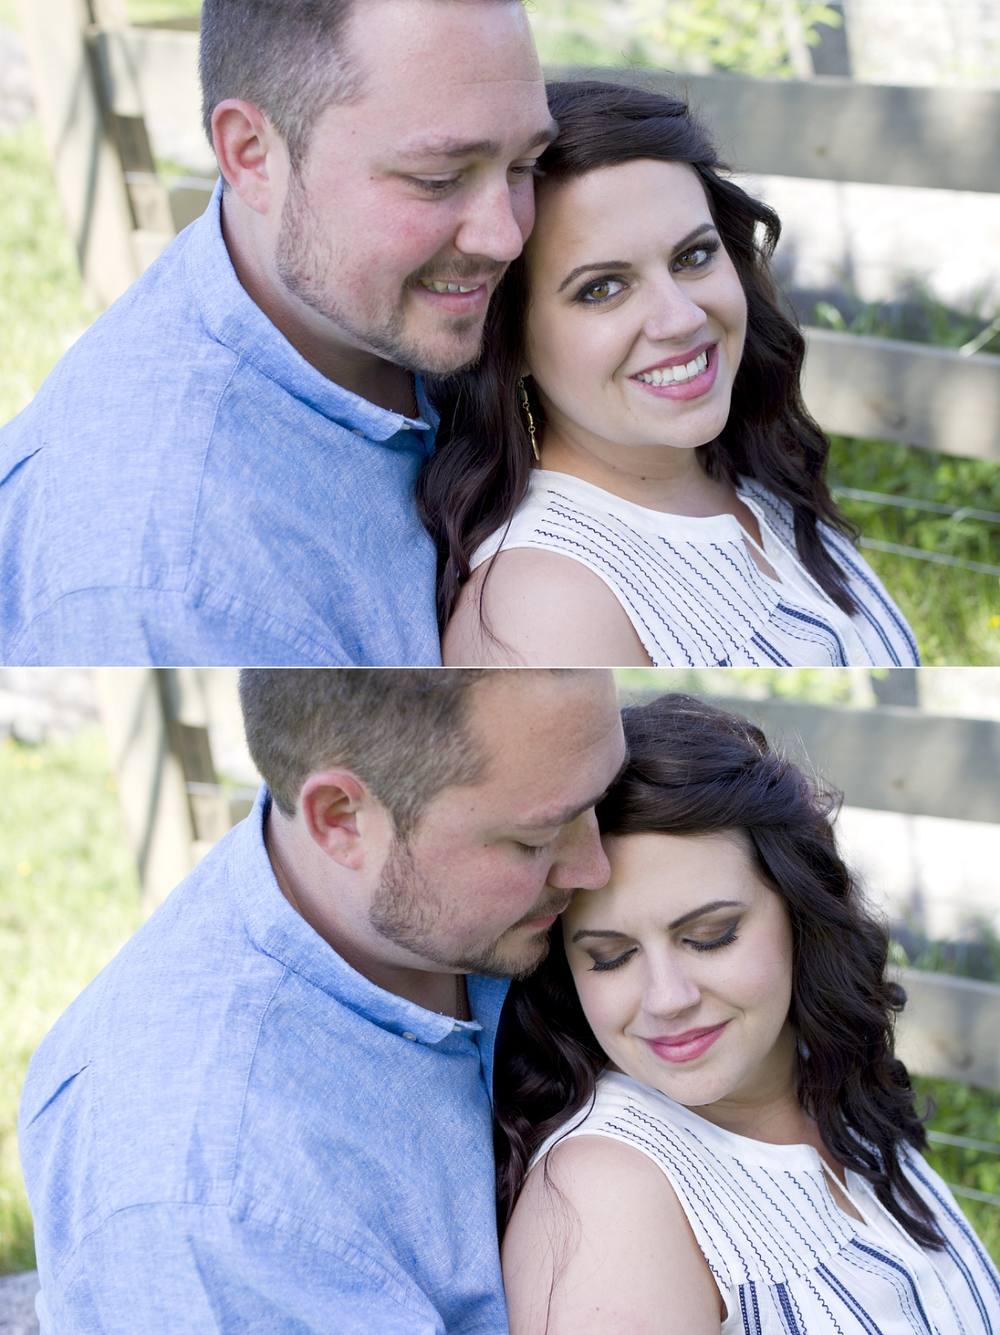 Big-Spring-Farm-Lexington-Engagement-Photos-_0017.jpg